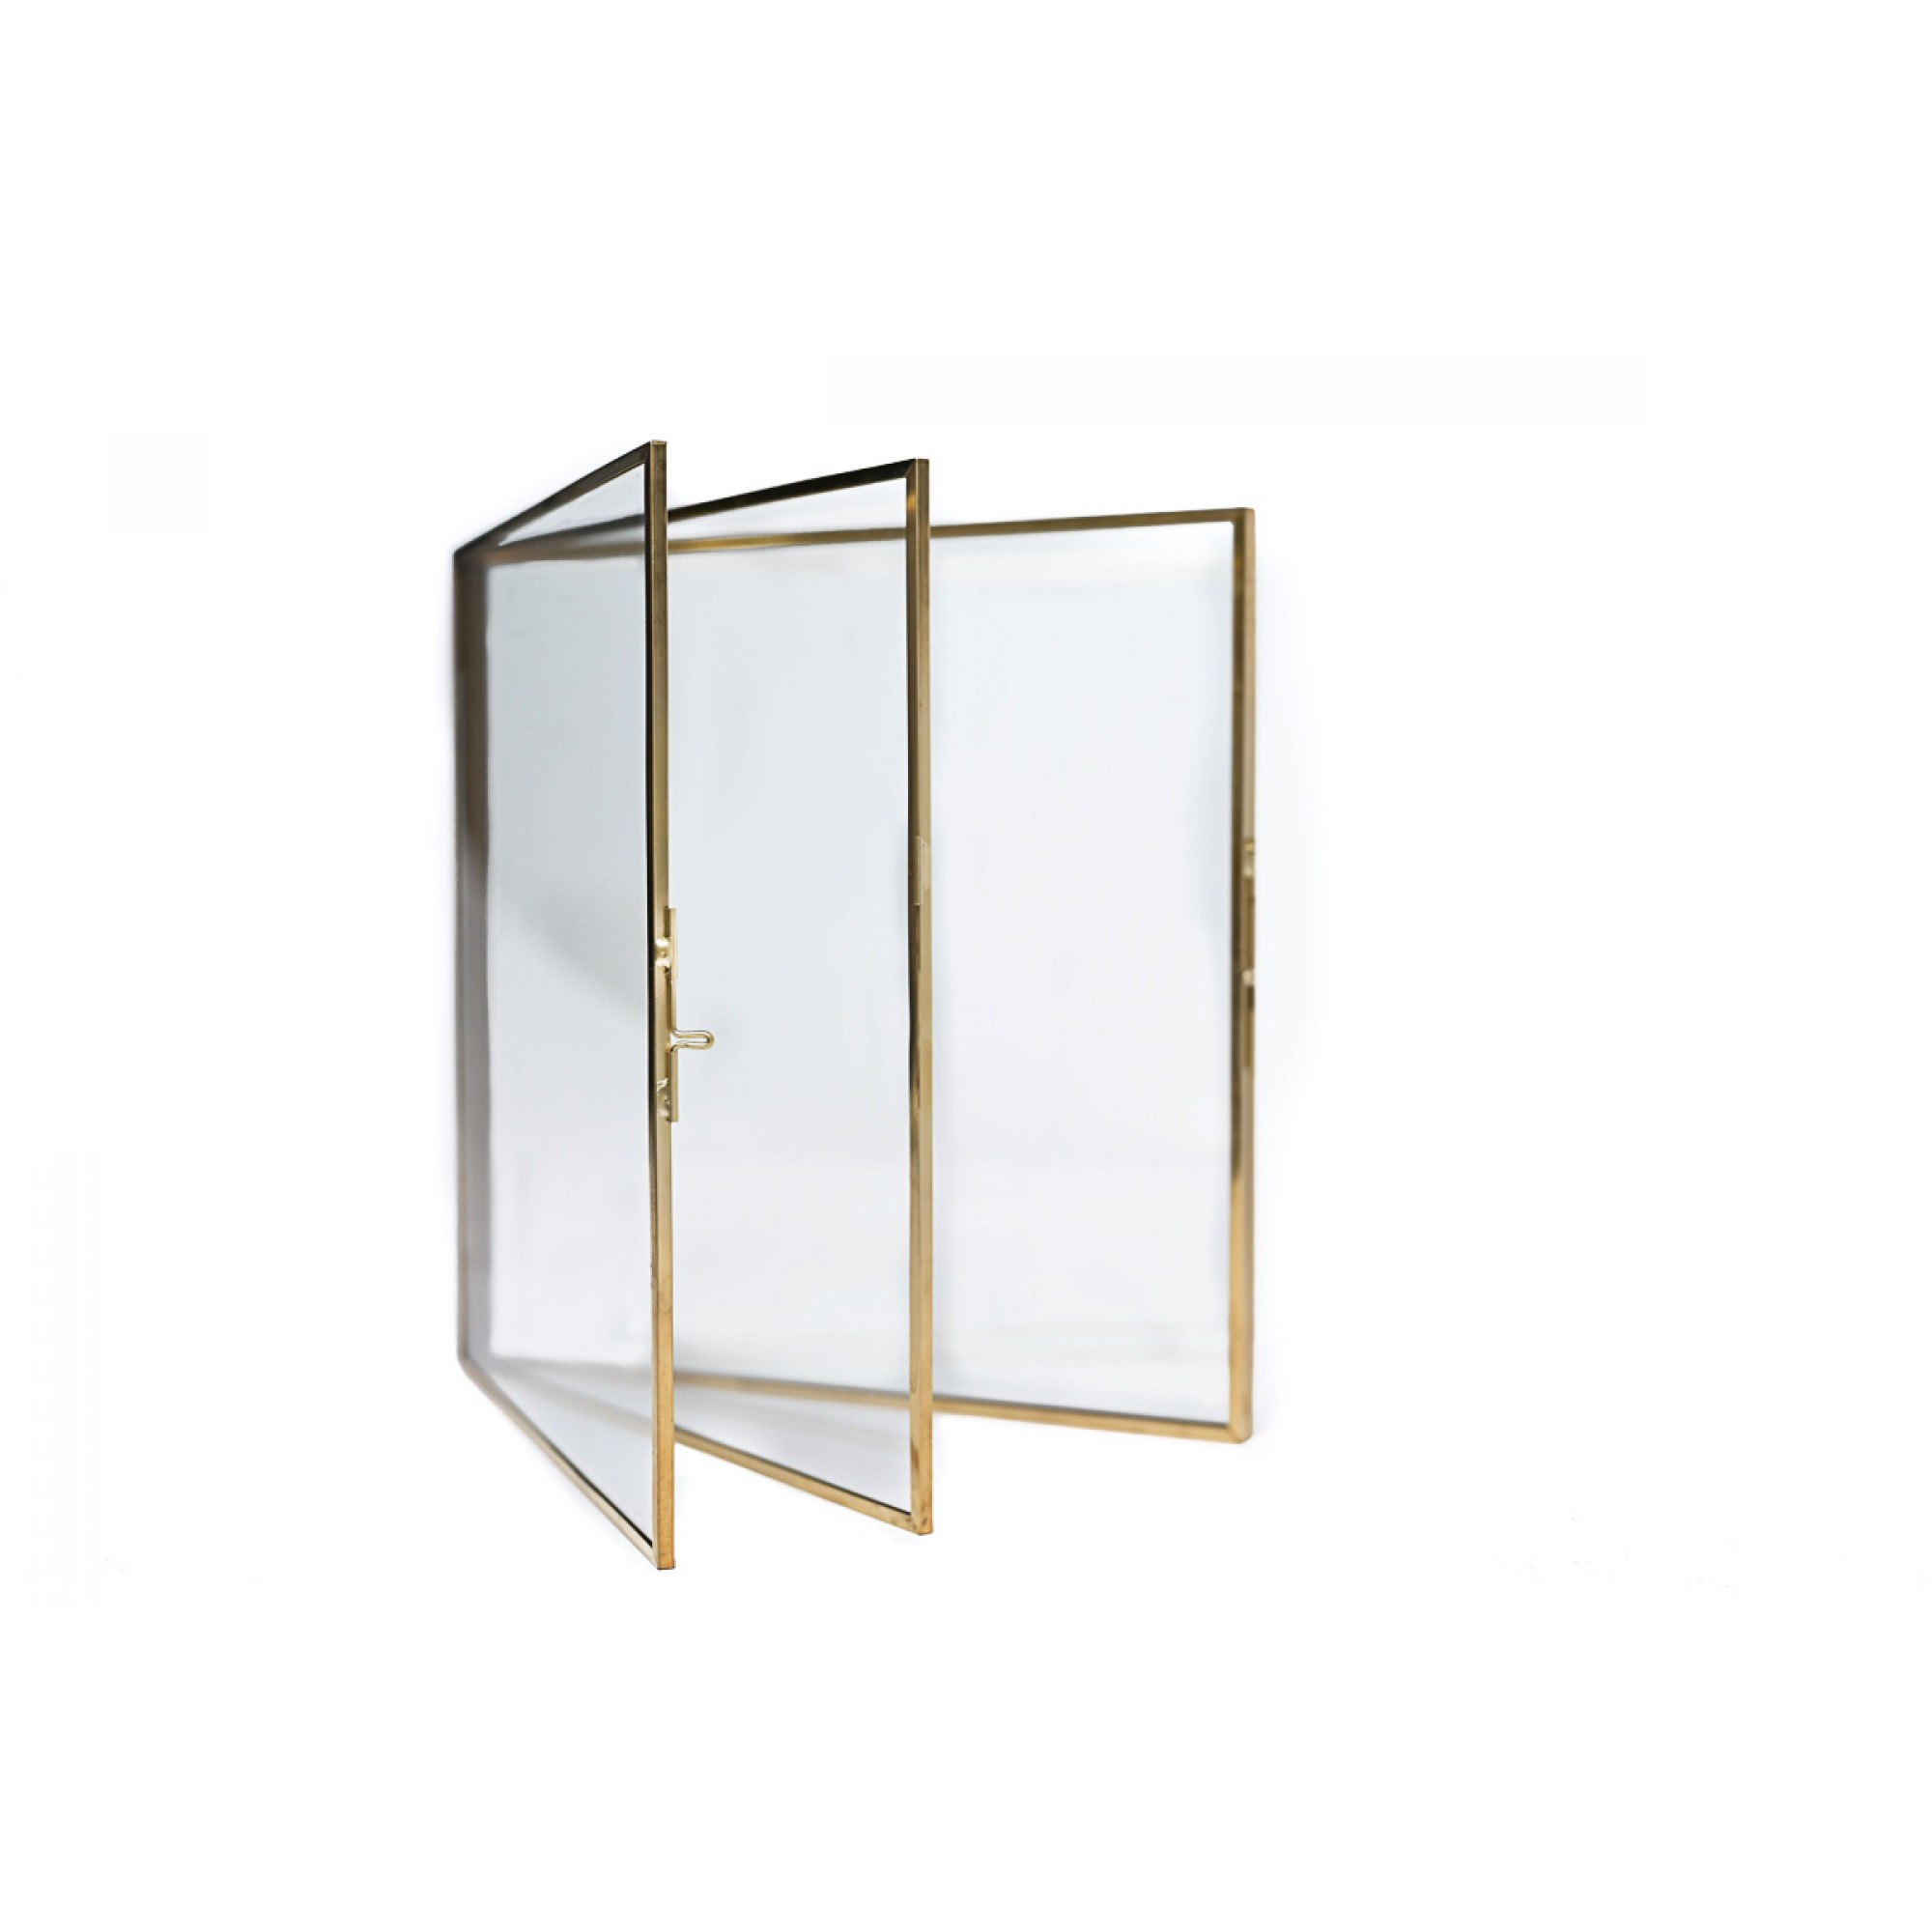 Photo frame with gold metal structure, 15.2 x 20.3 cm - BOOK